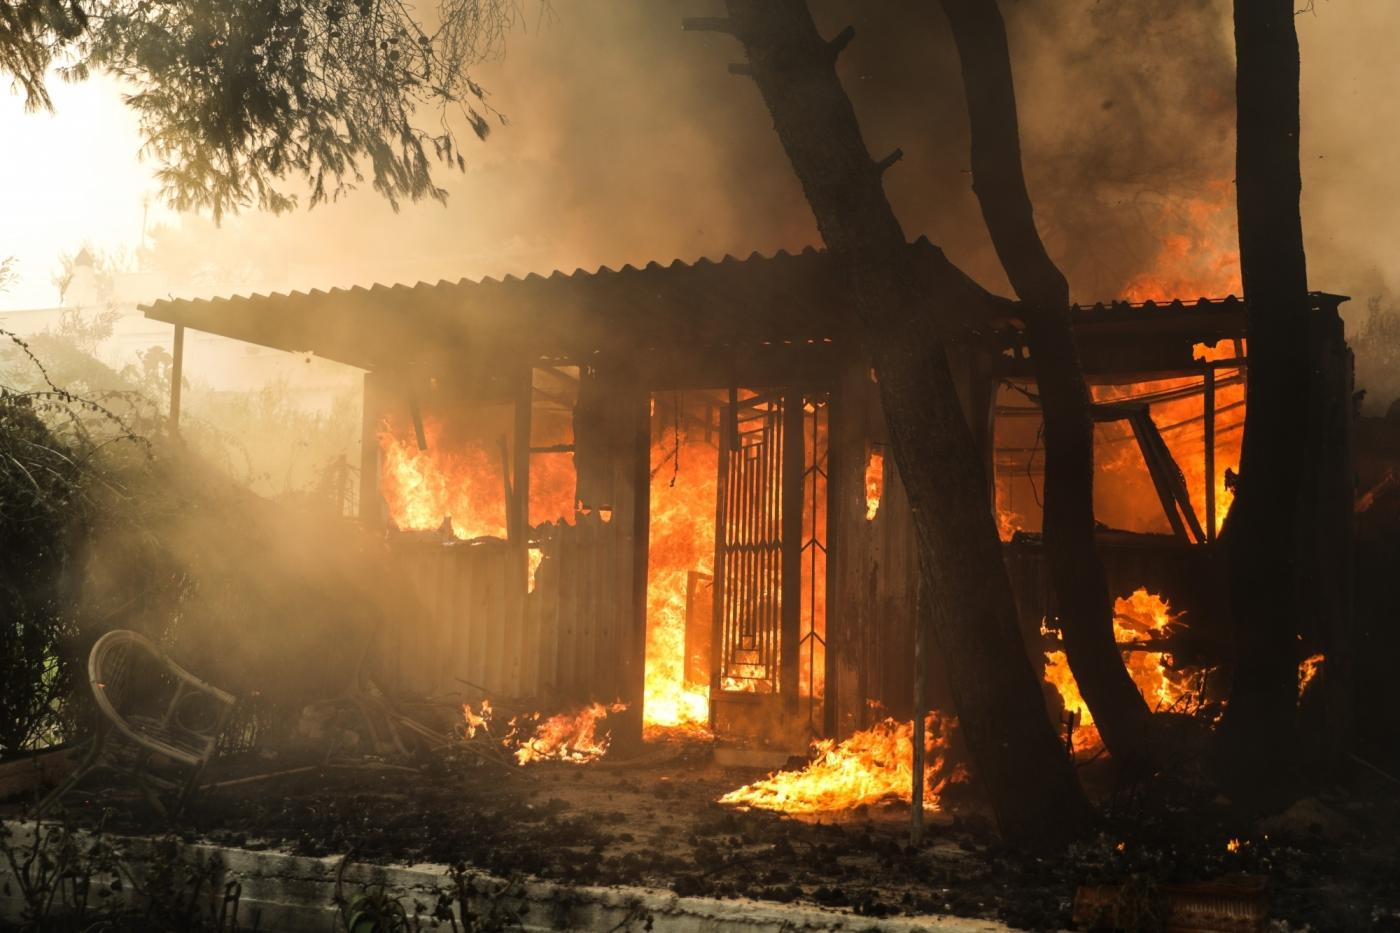 KINETA (GREECE), July 23, 2018 (Xinhua) -- A house is seen burning amid wildfire in the town of Kineta near Athens, Greece, July 23, 2018. Western and Eastern Attica were declared in state of emergency by local authorities on Monday as three major wildfires were raging in suburbs and seaside resorts near the Greek capital, forcing hundreds of residents to abandon their homes and seek refuge by the sea, Greek national news agency AMNA reported. (Xinhua/Lefteris Partsalis/IANS) by .